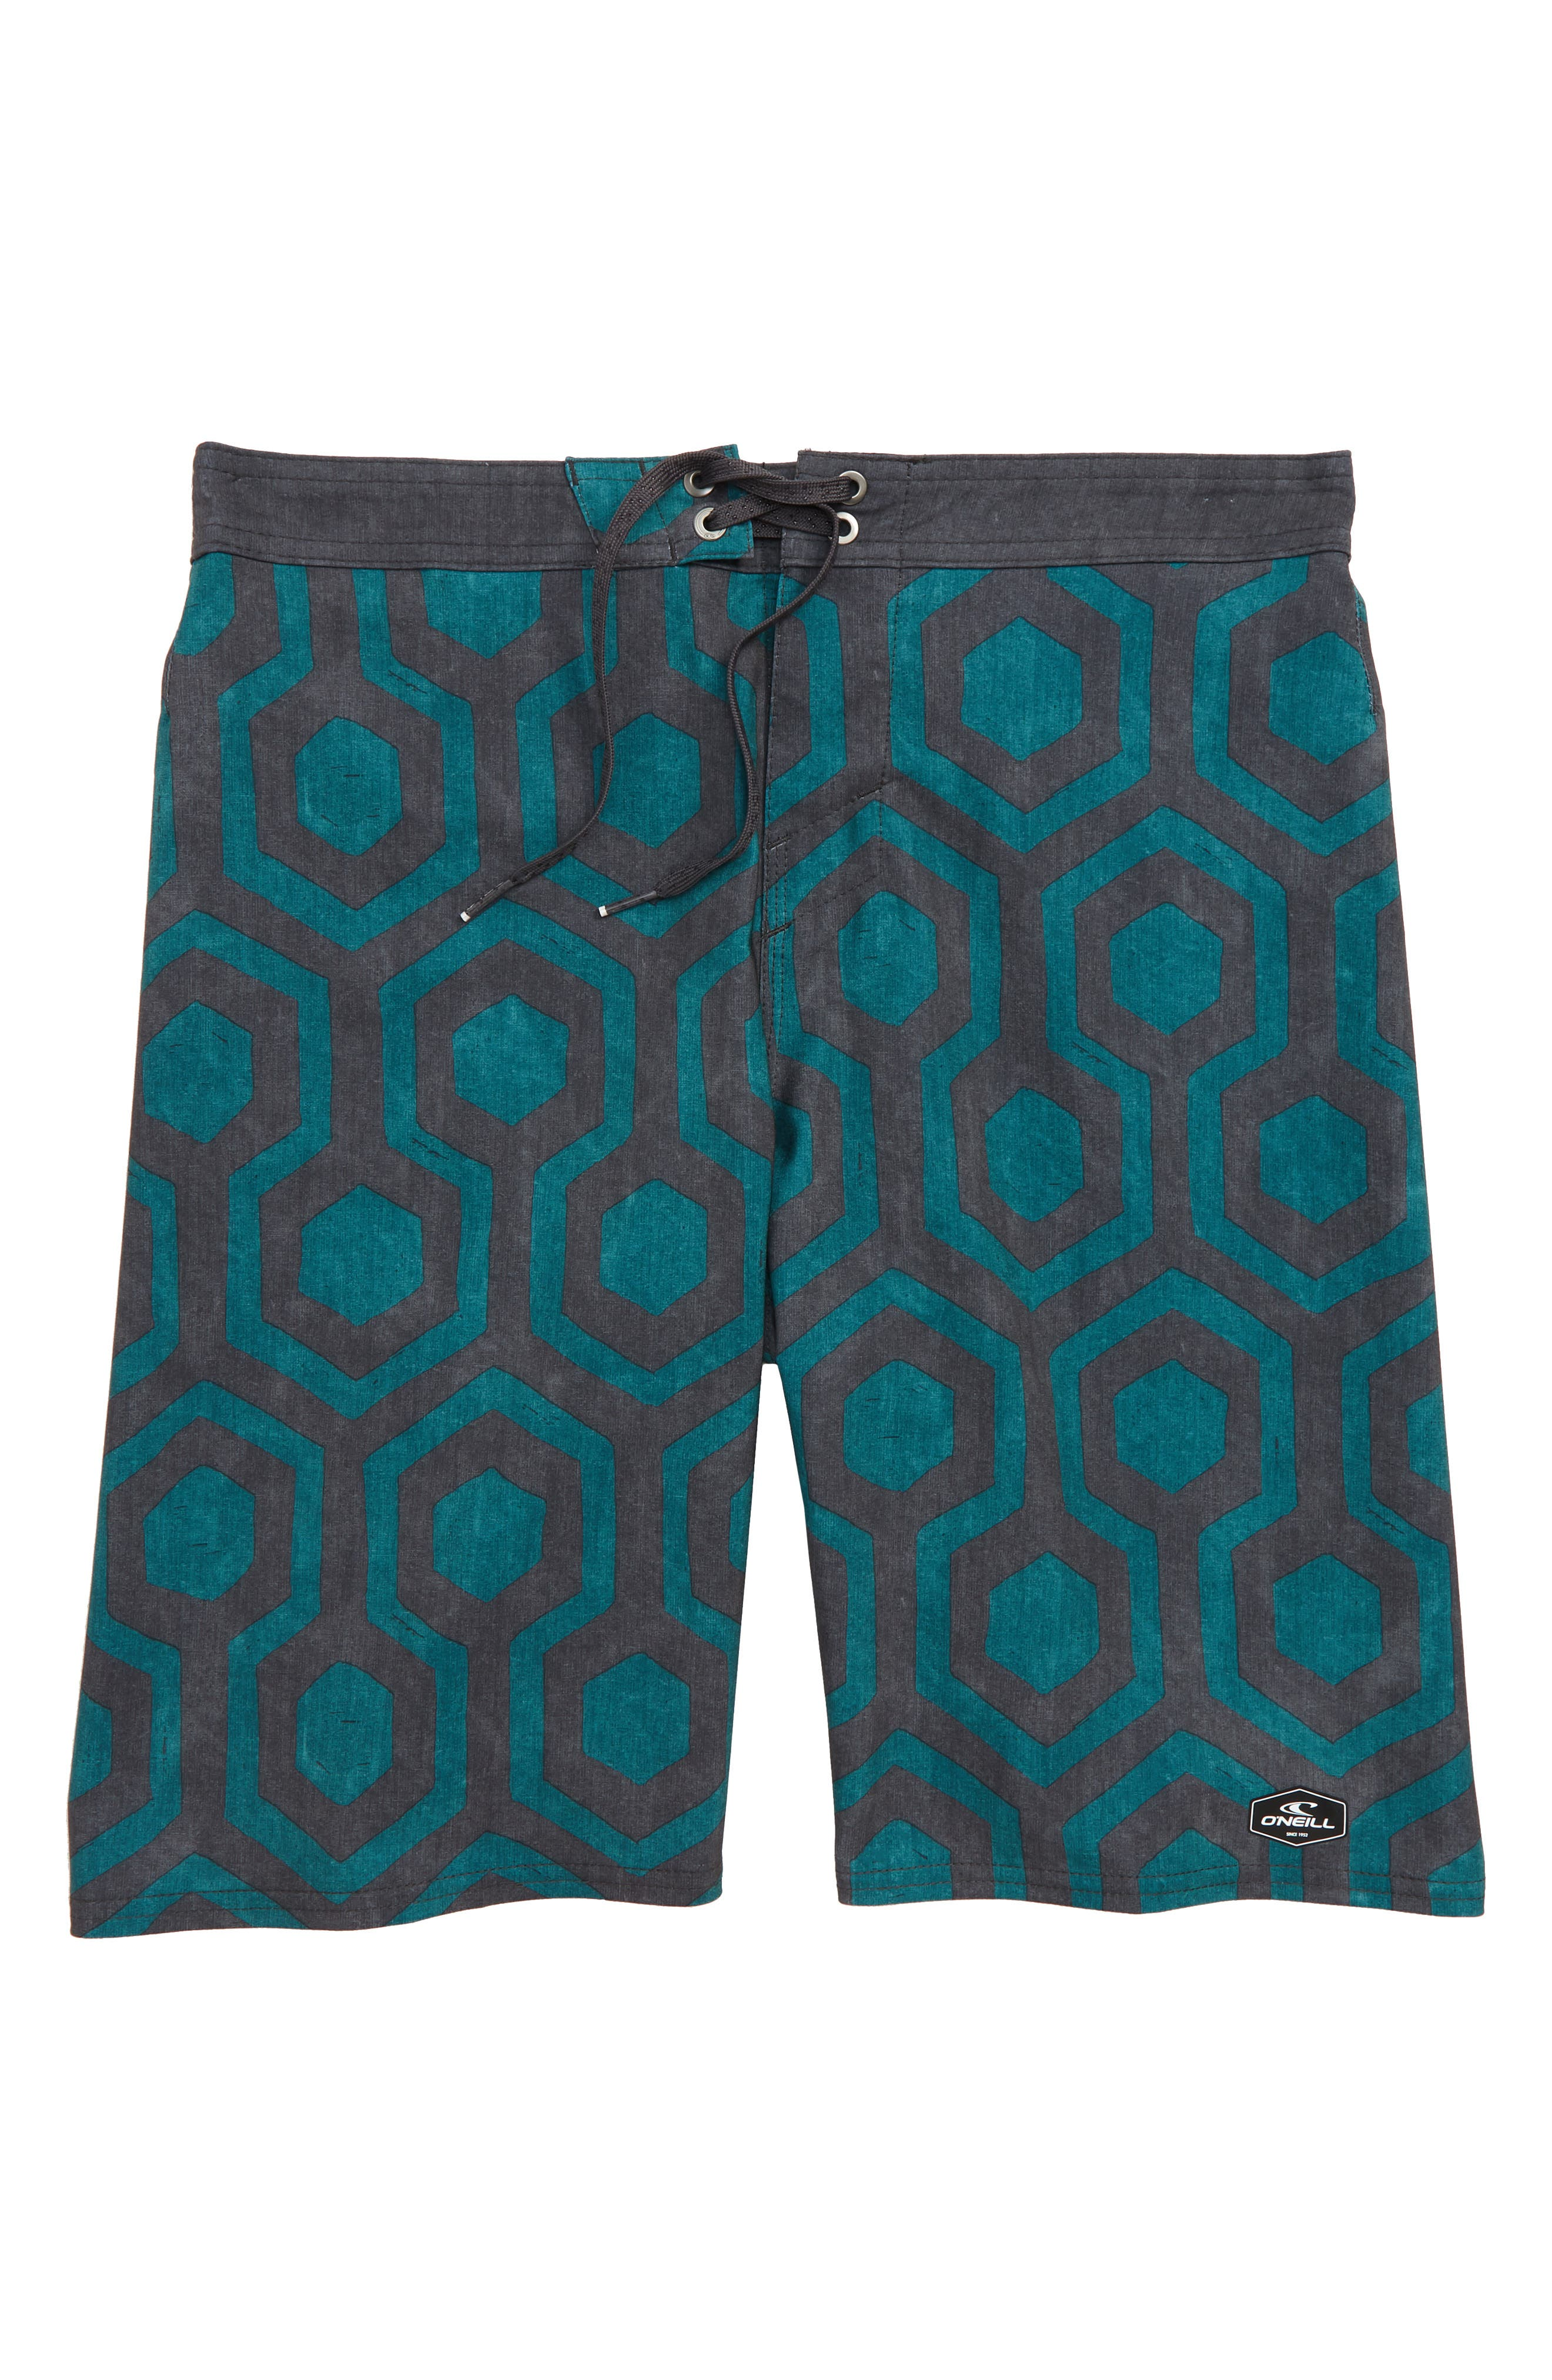 Hyperfreak Wrenched Board Shorts,                         Main,                         color, 021